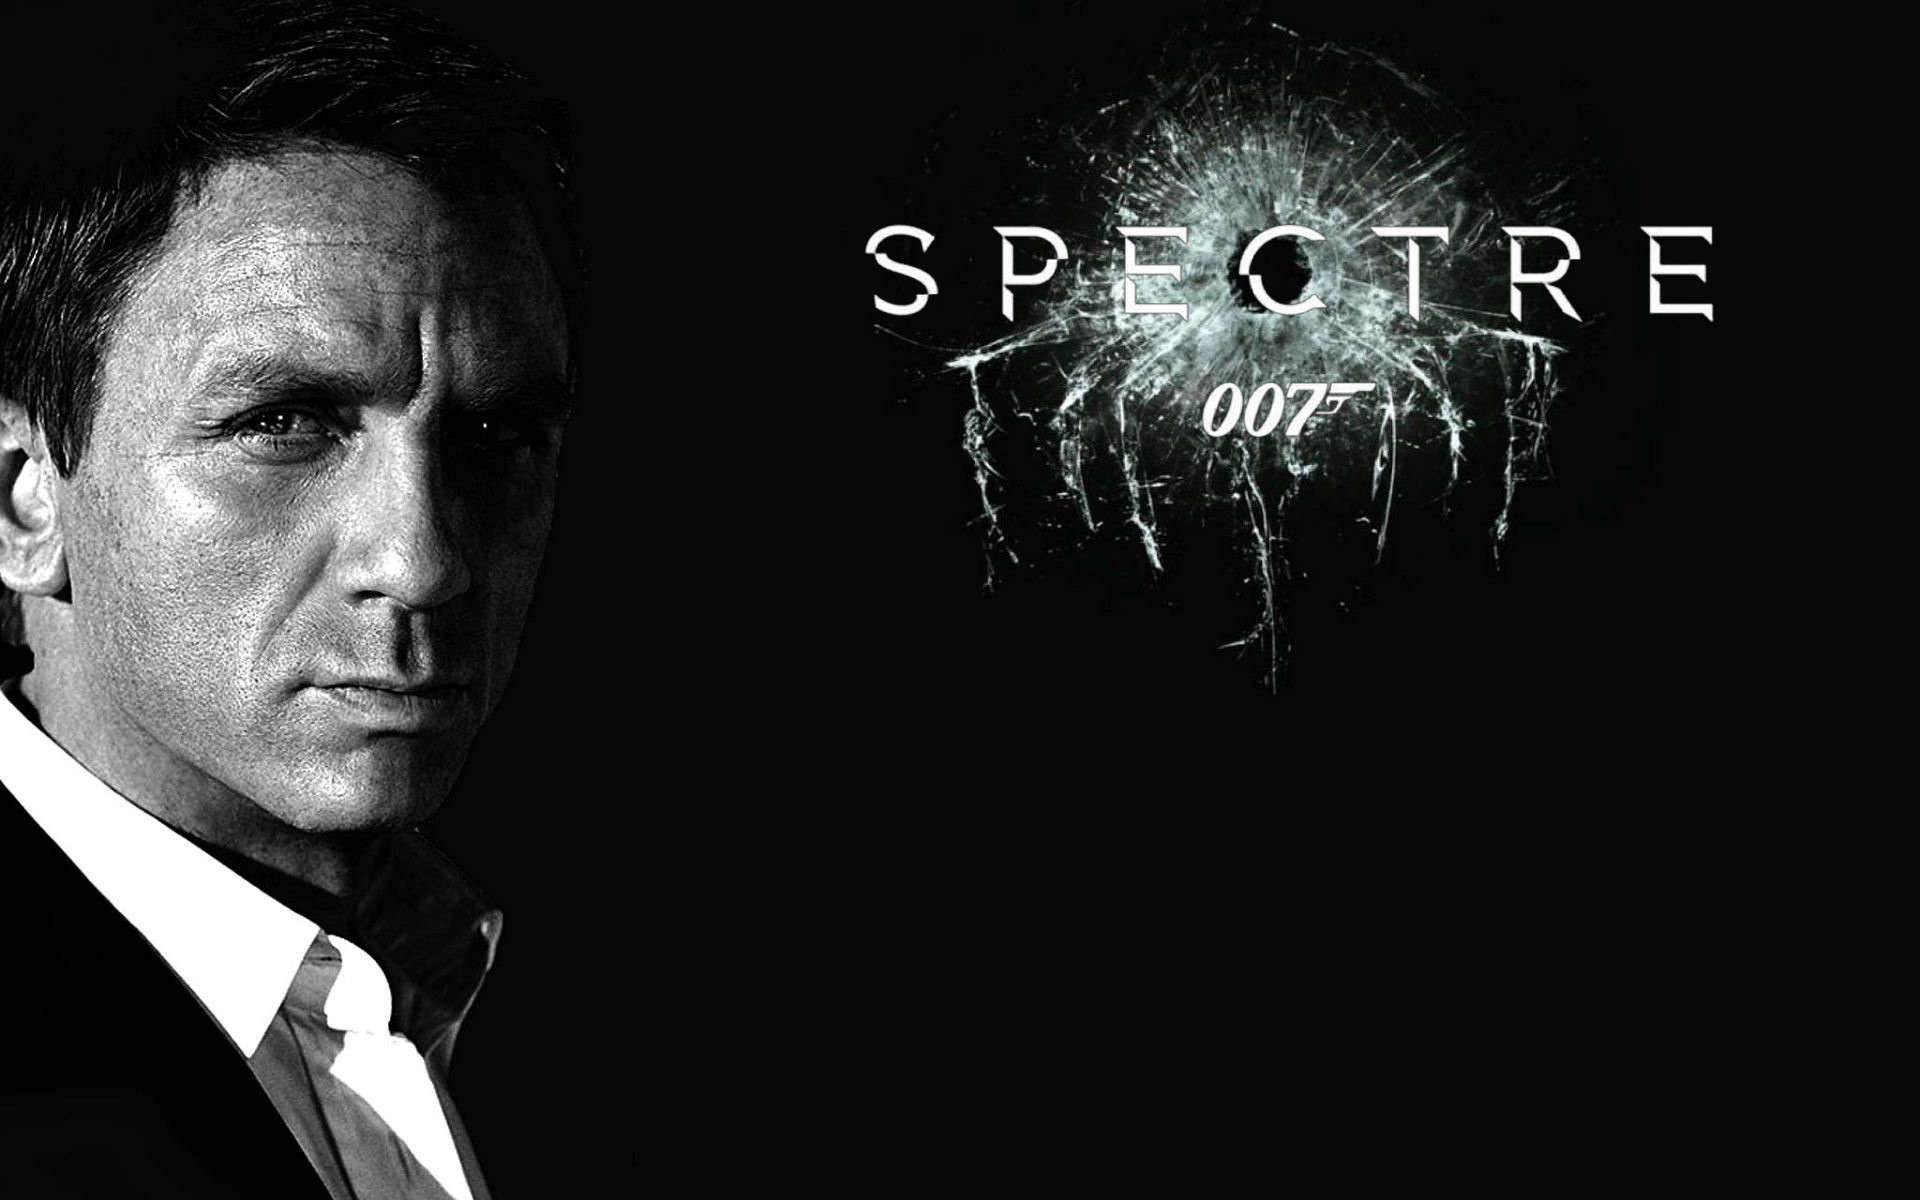 james bond movie spectre free download